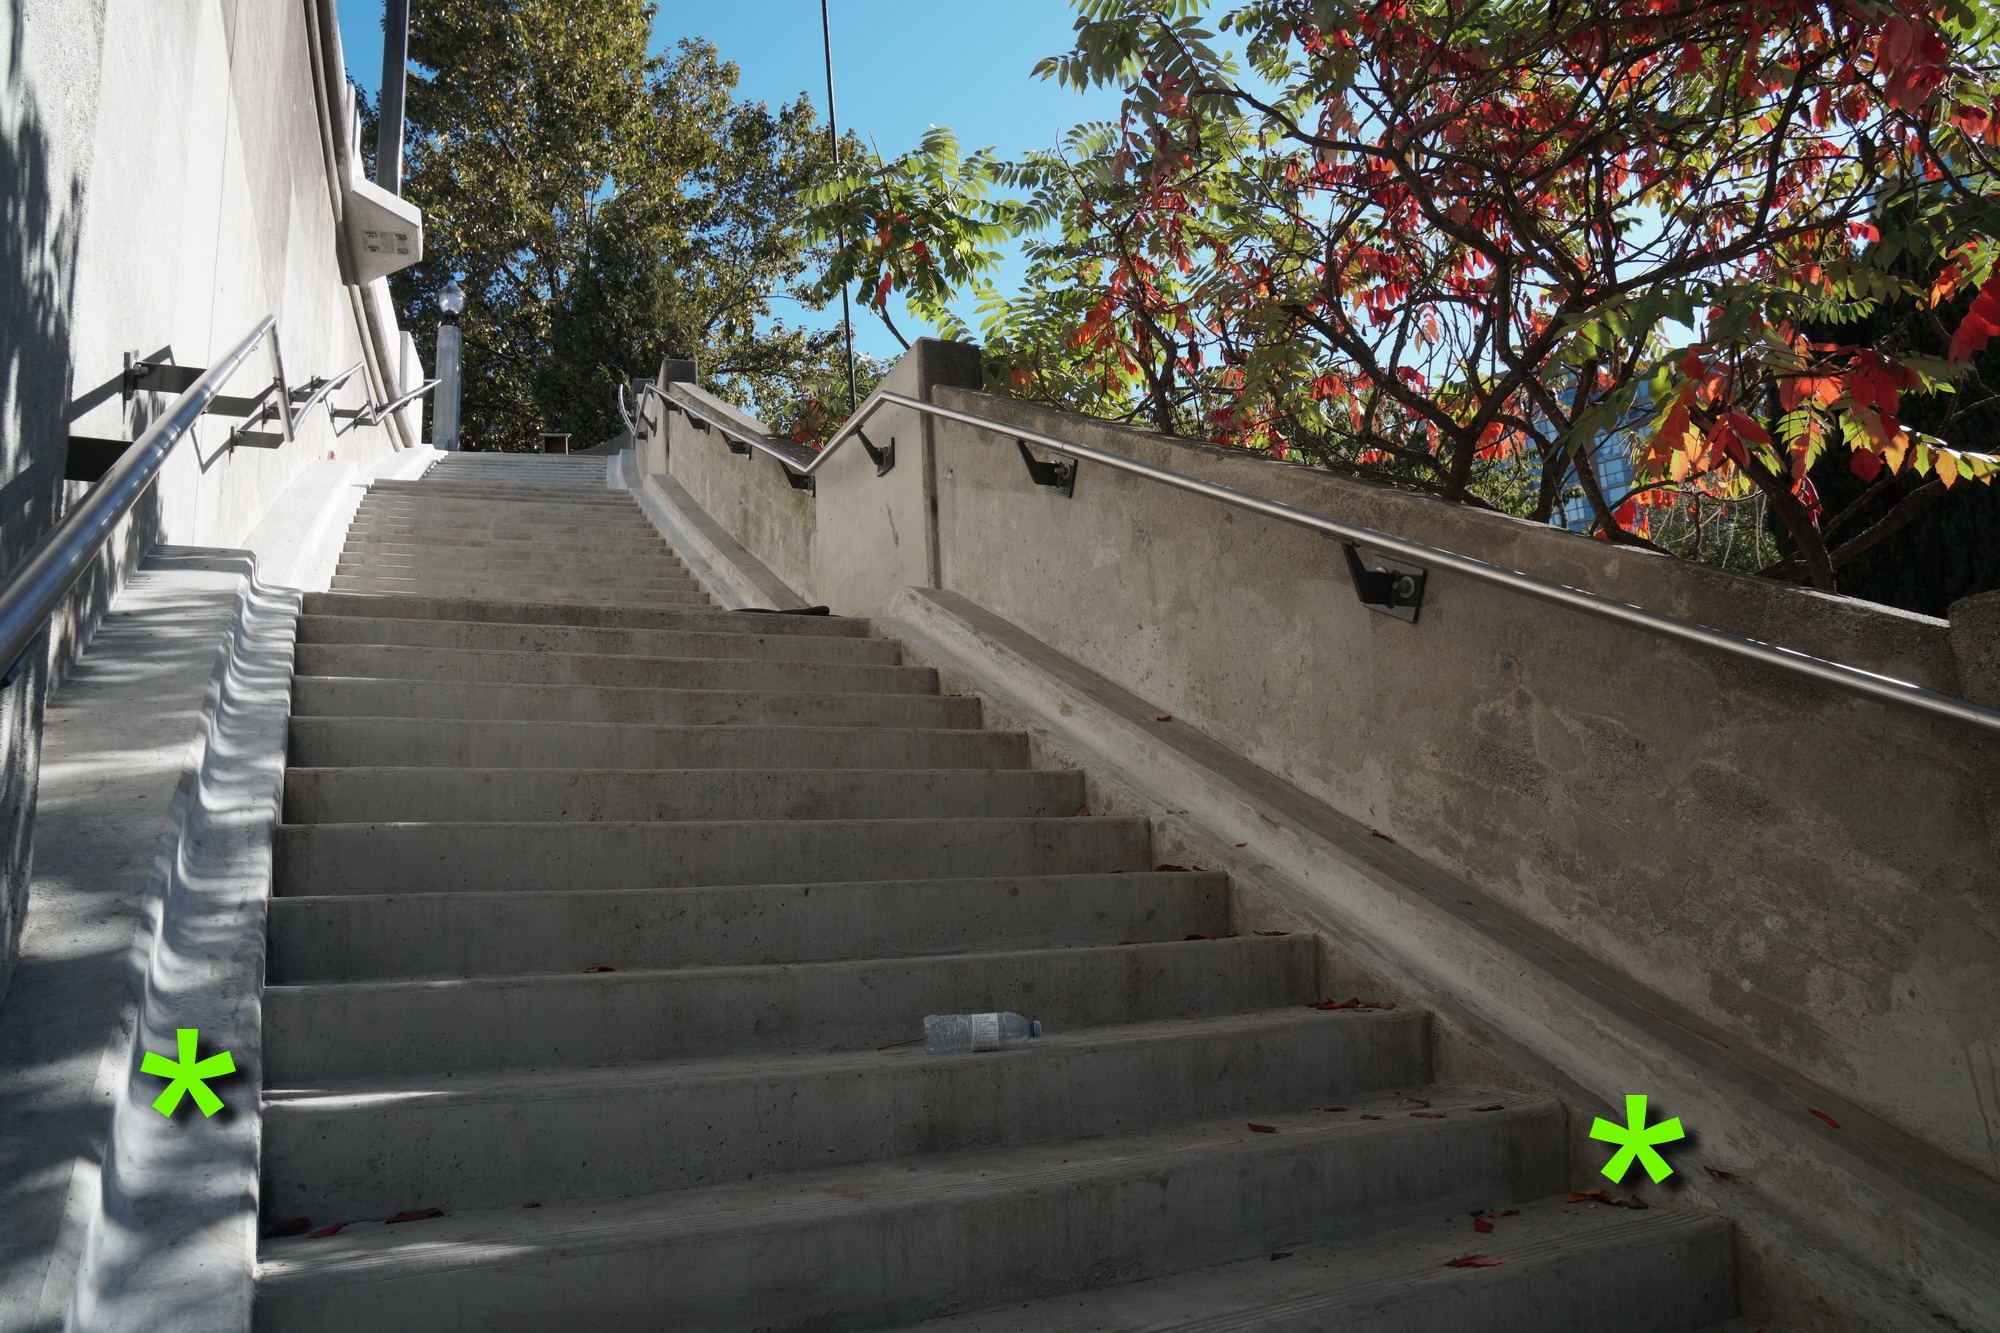 East side stairs, with bike-friendly runnells (*).